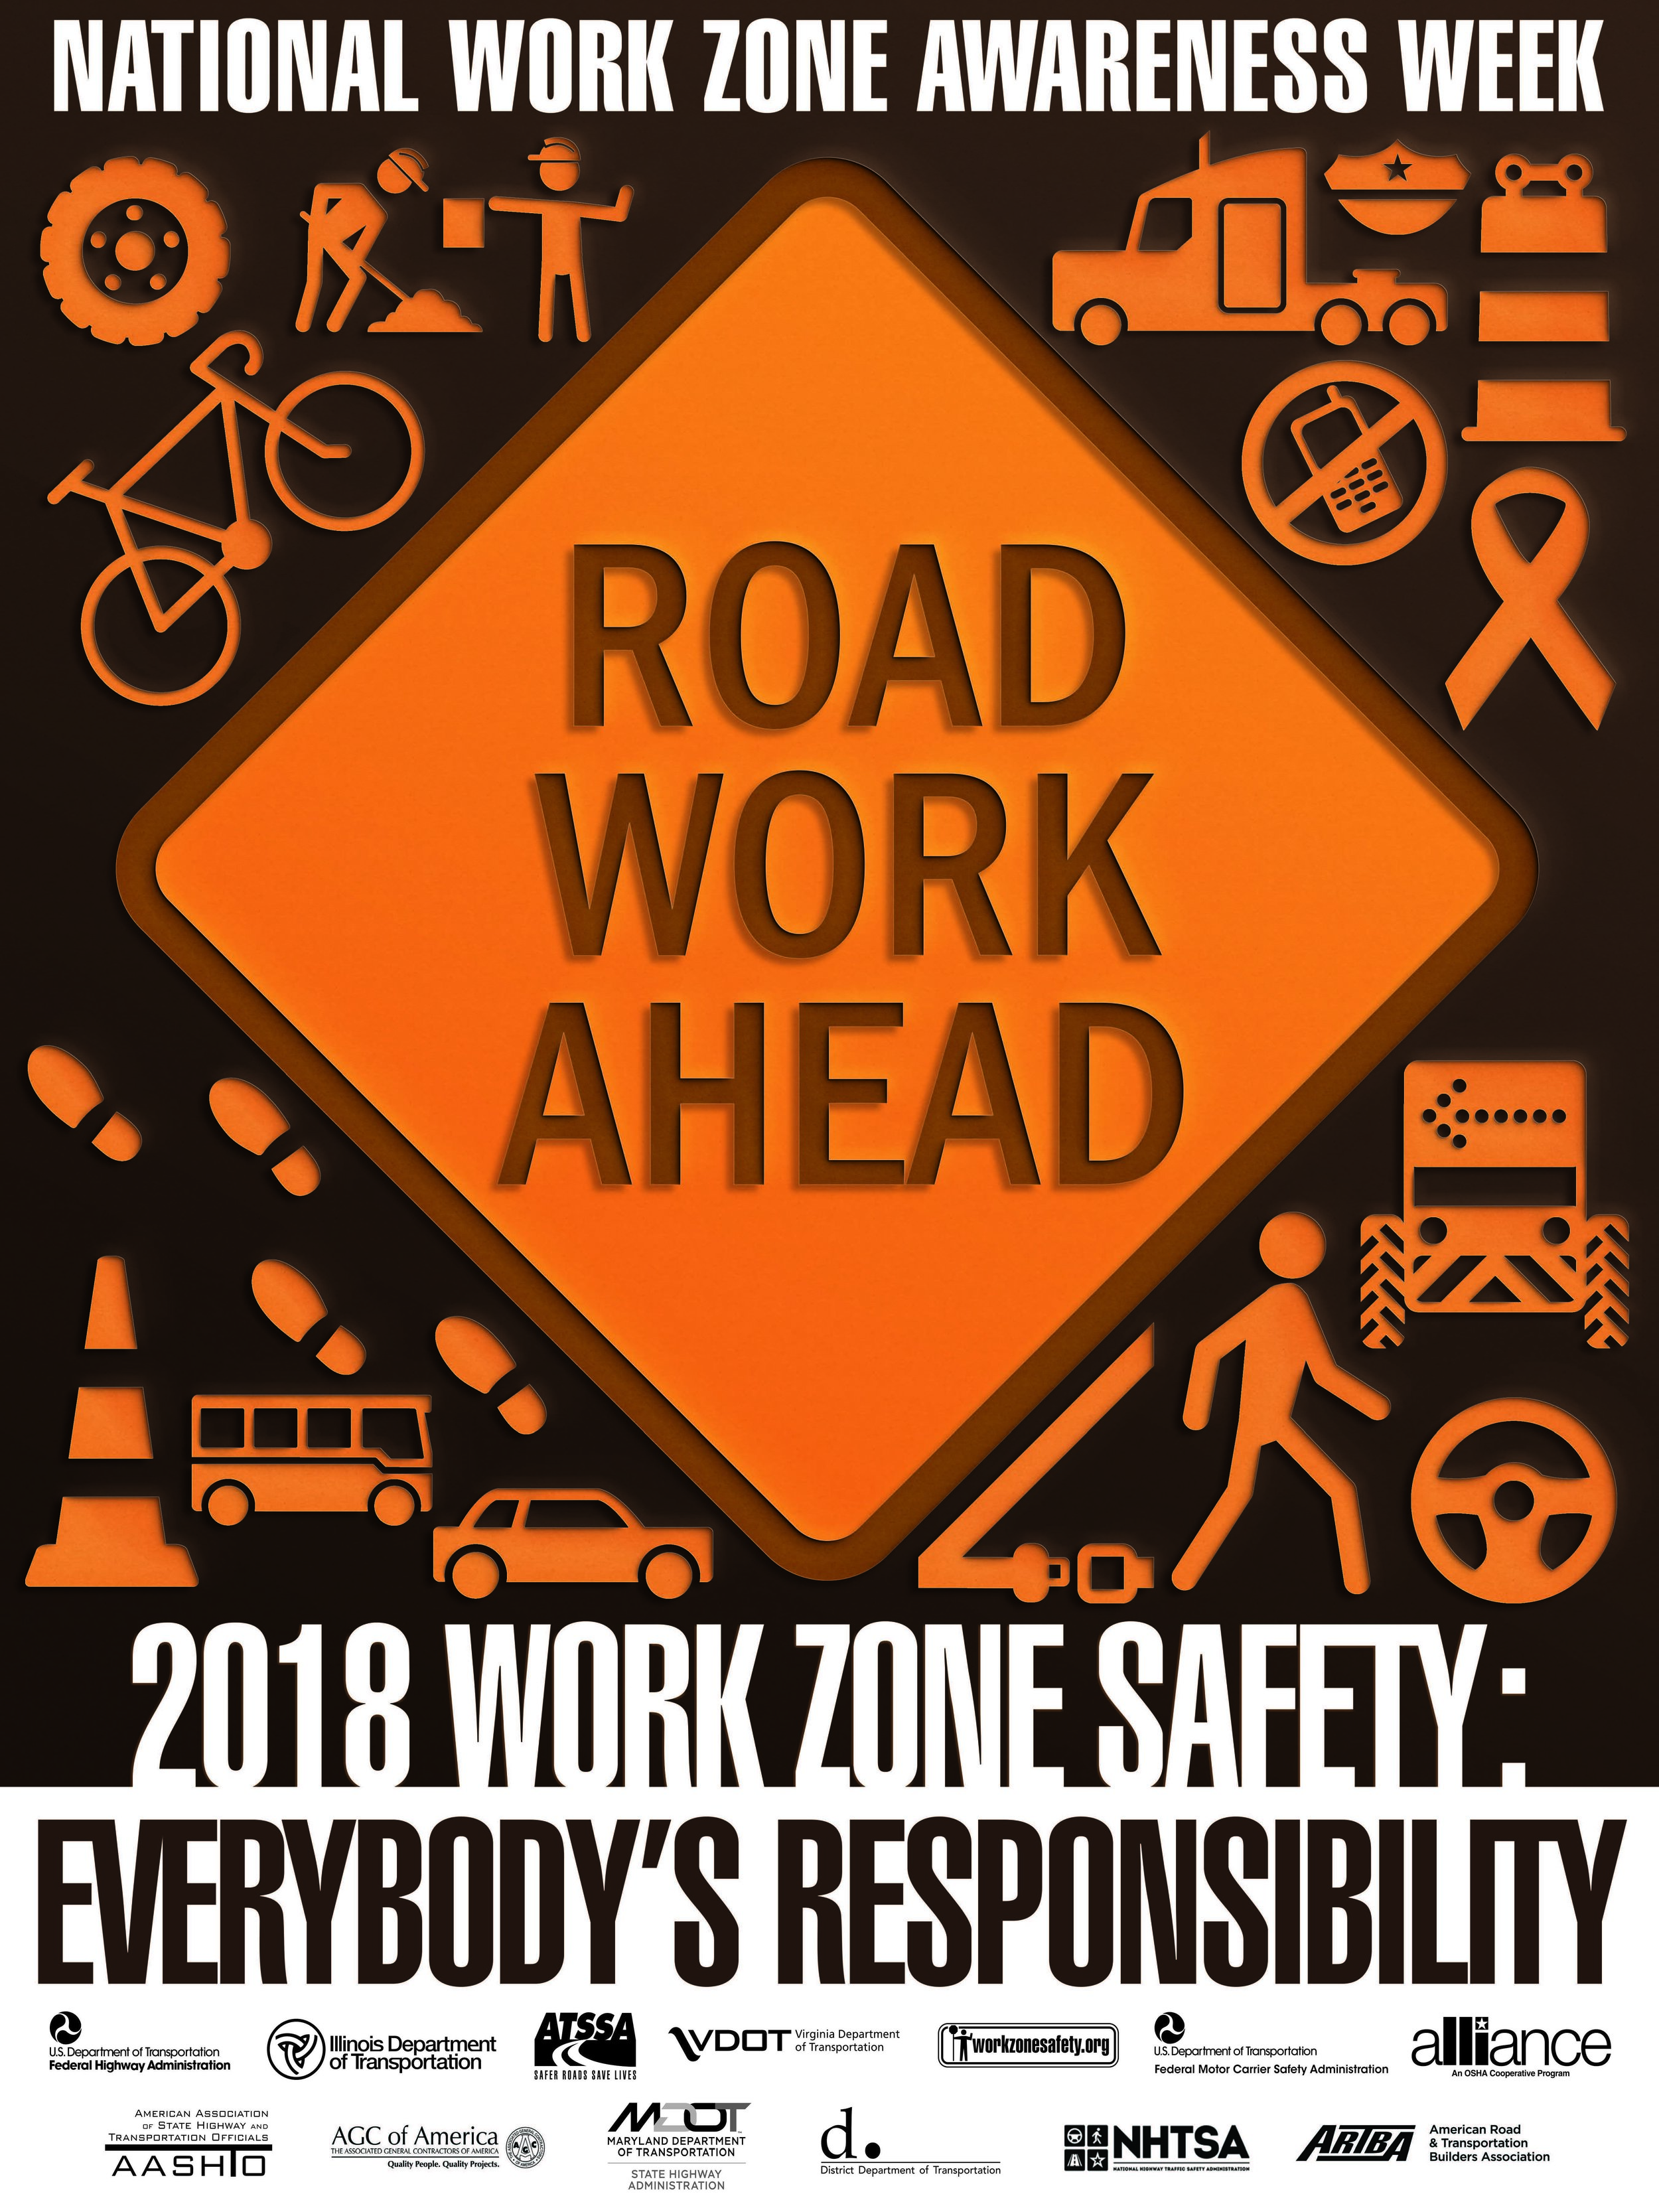 E.H. Wolf & Sons, Inc. recognizes National Work Zone Awareness Week